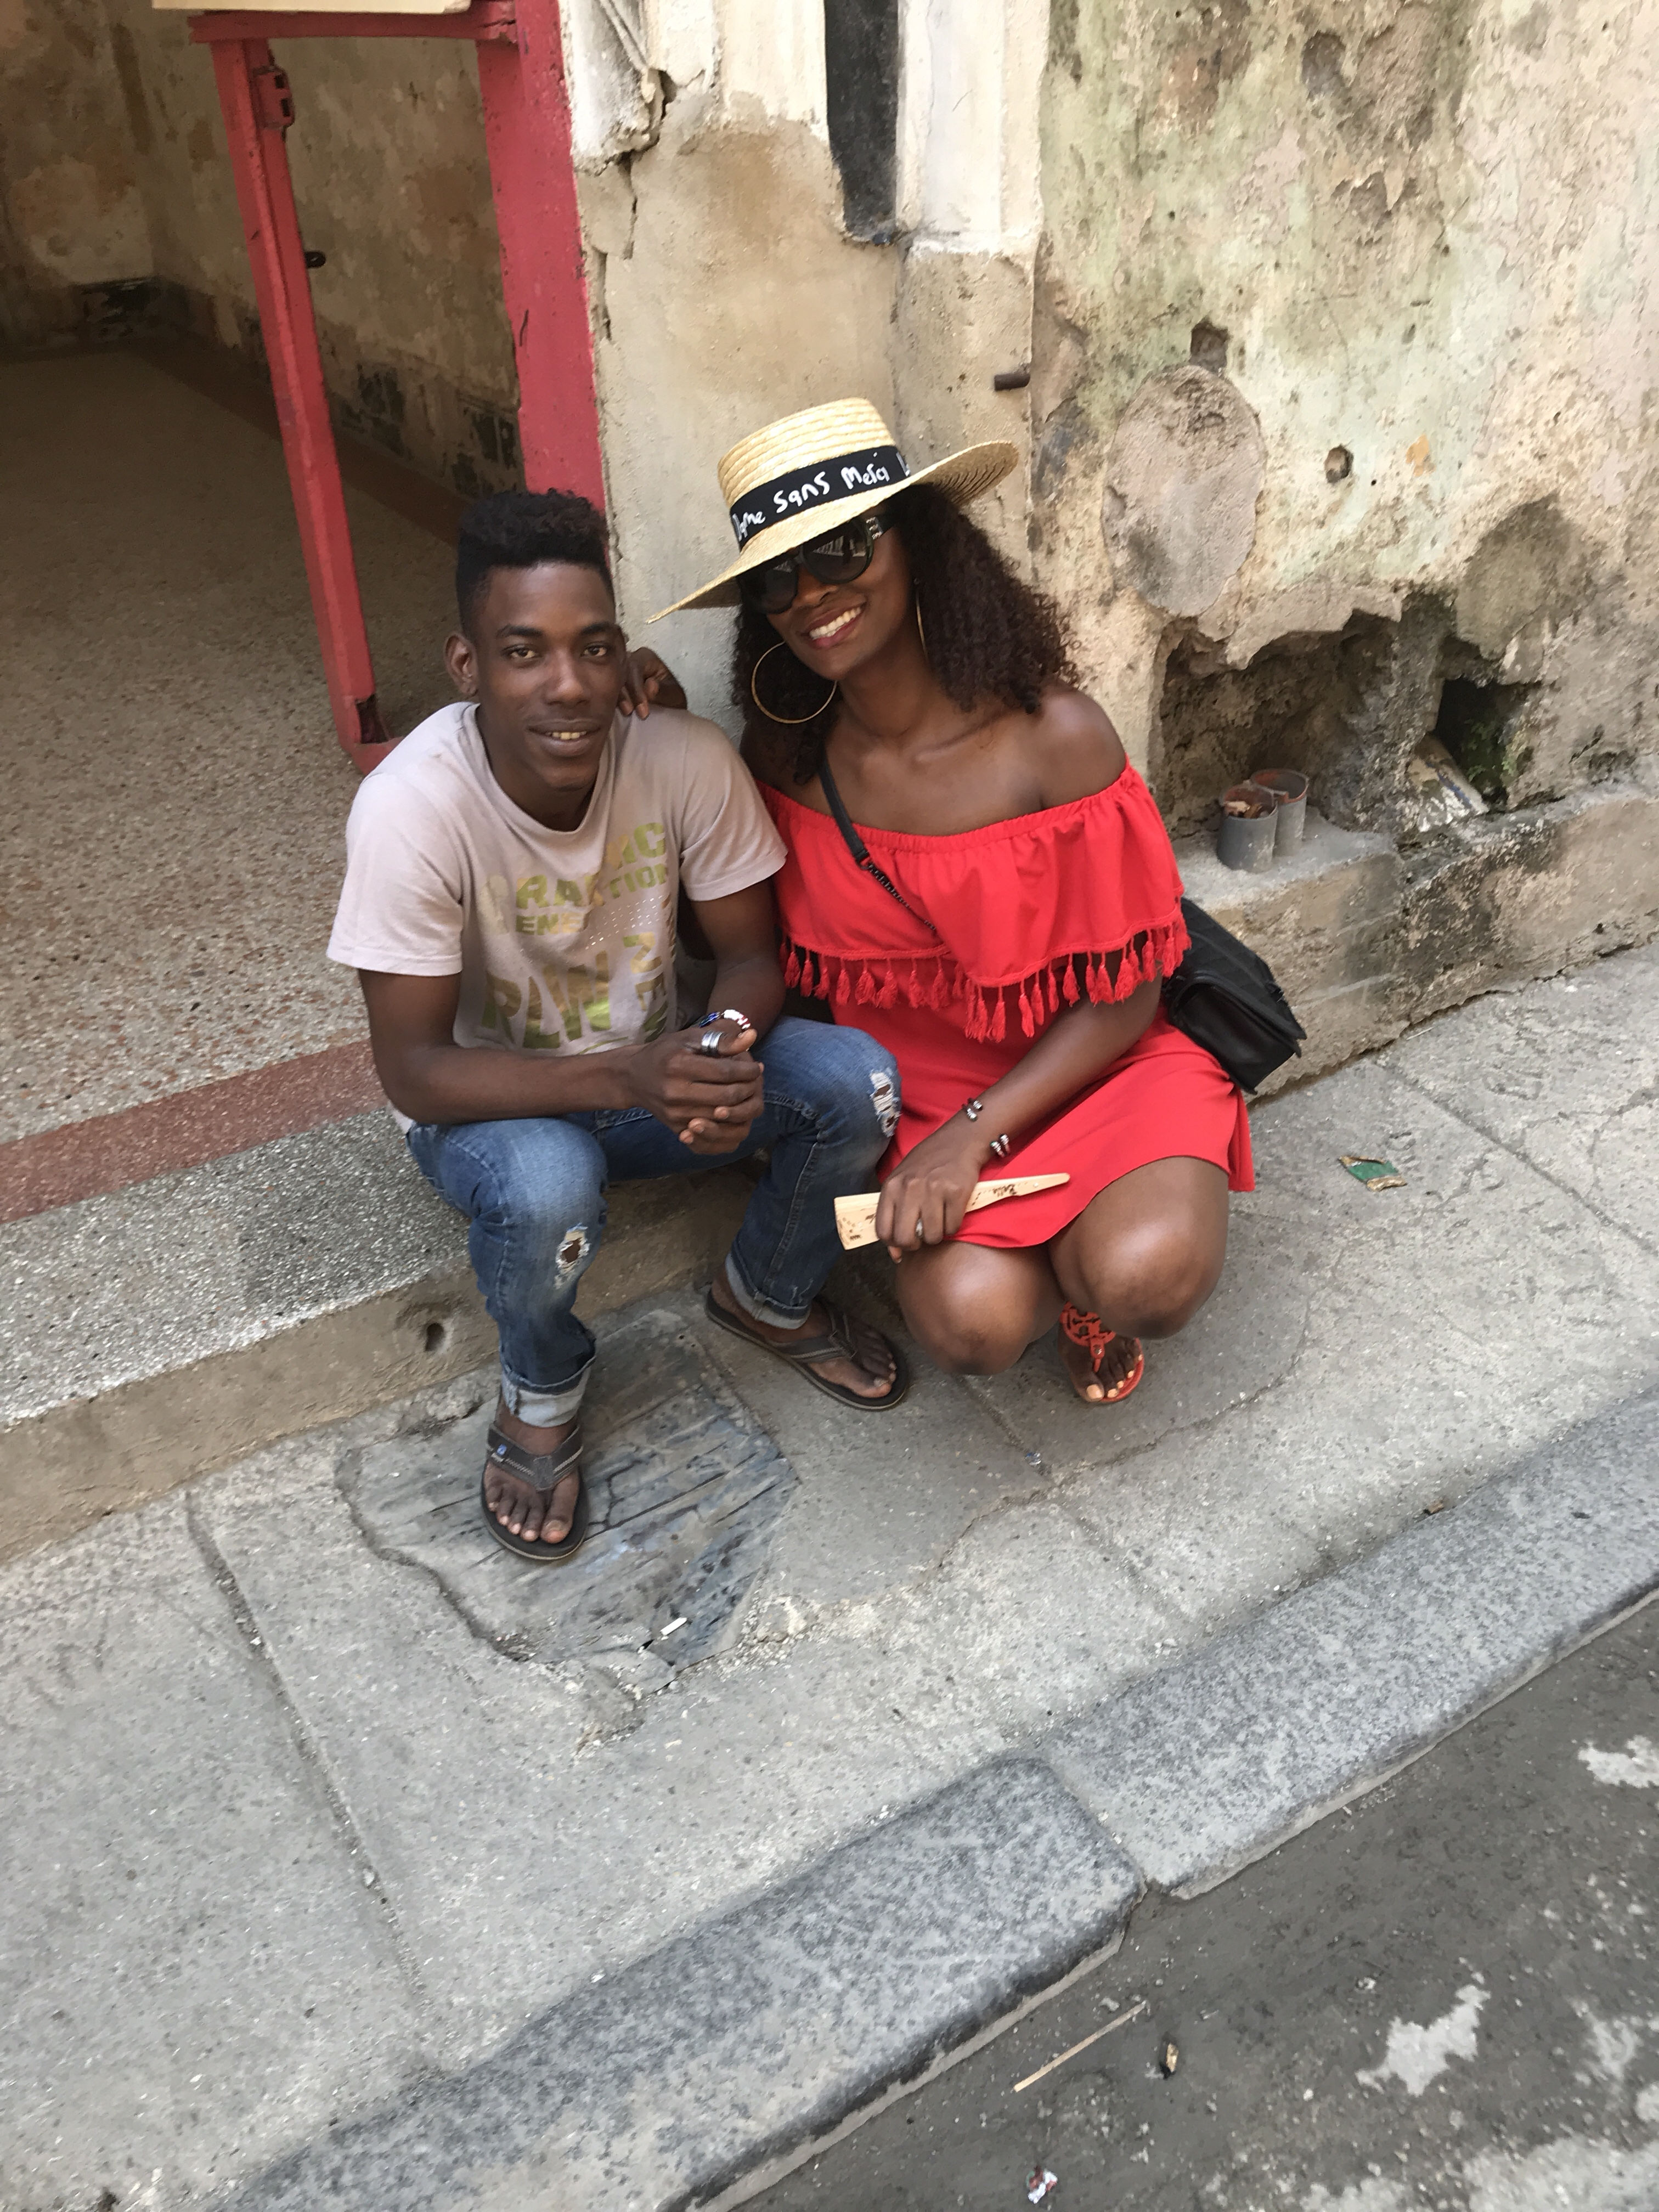 With my new friend on the streets of Old Havana